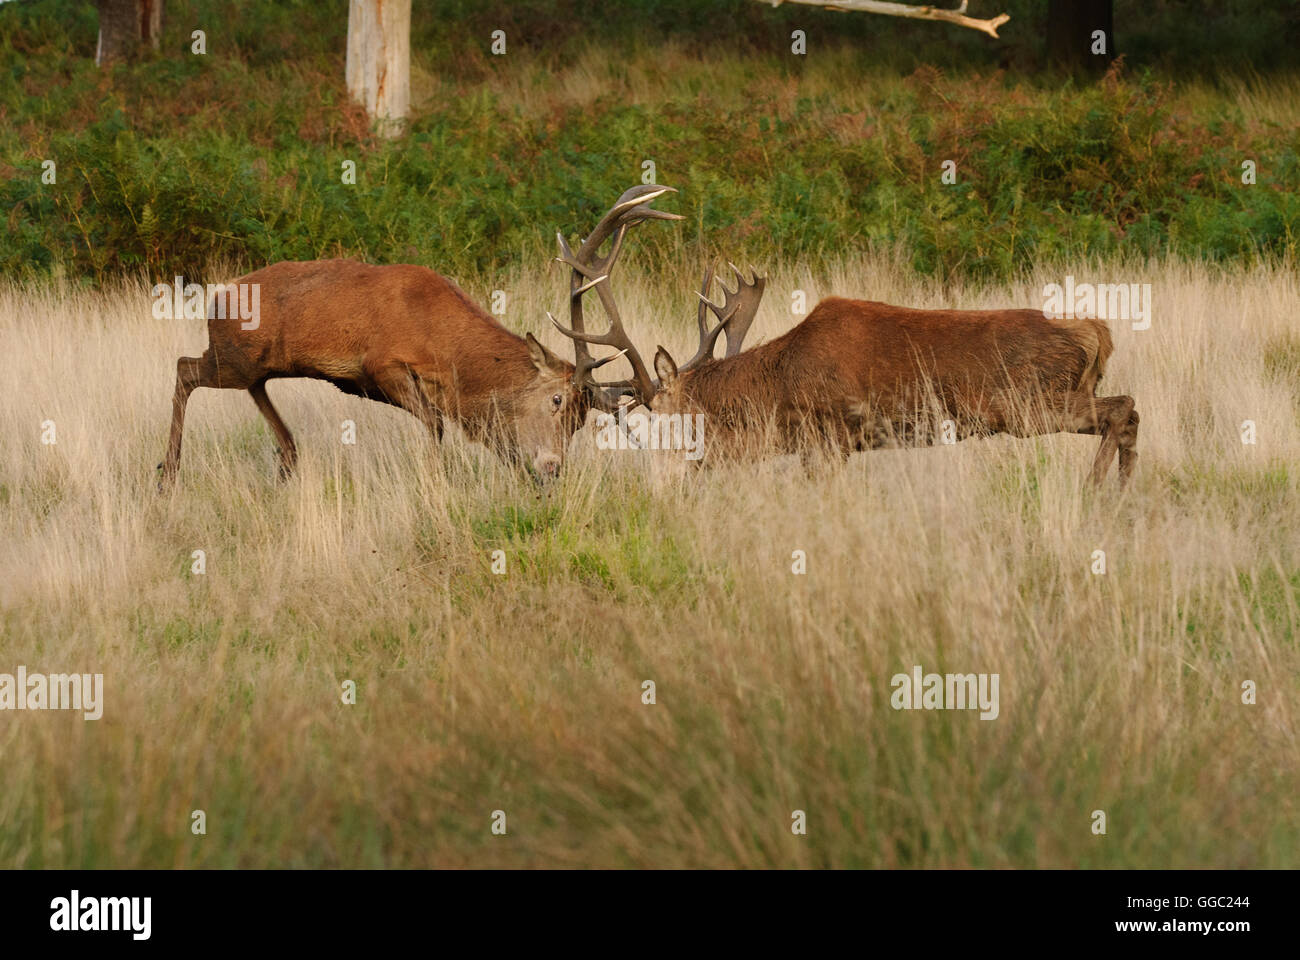 Two fighting Red deer stags during the rutting season - Stock Image